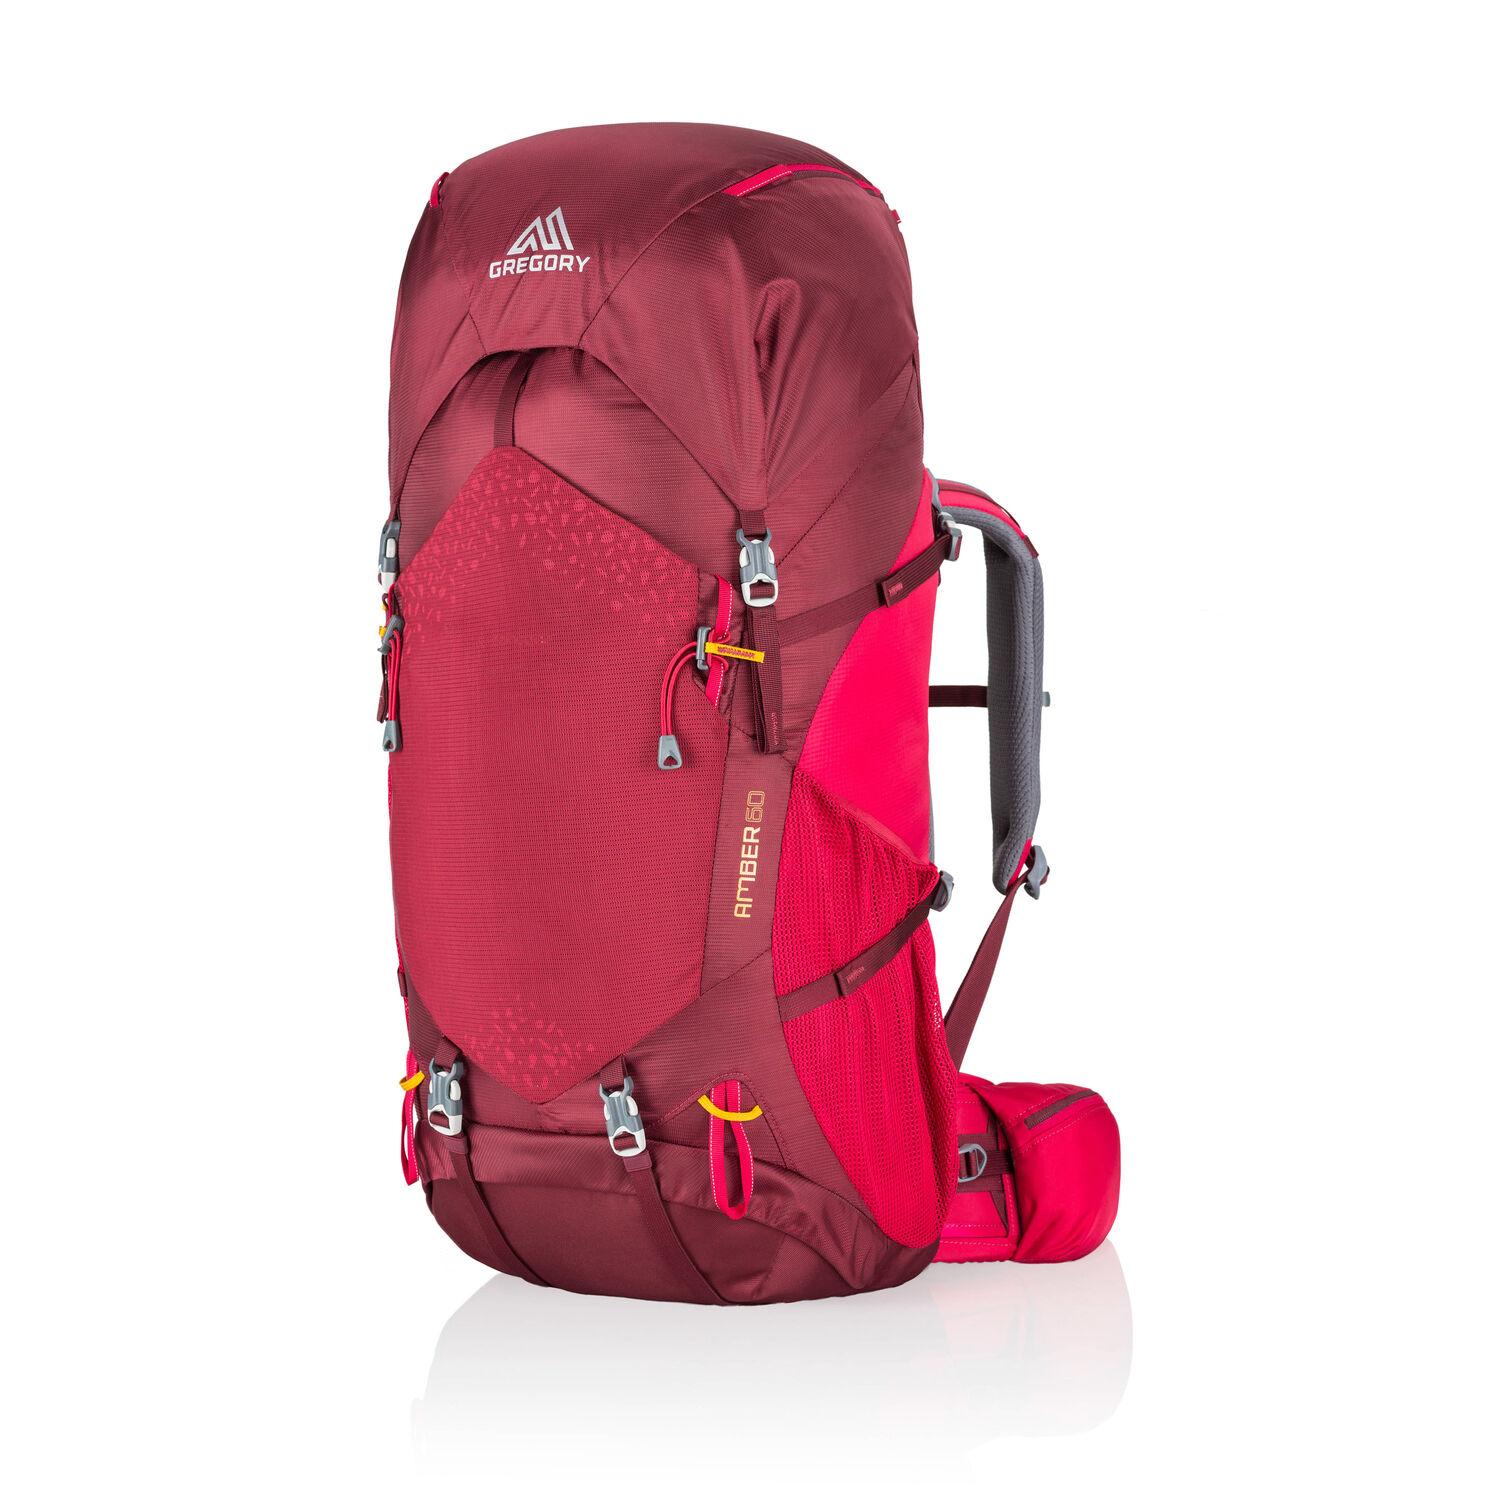 Amber 60 in the color Chili Pepper Red.